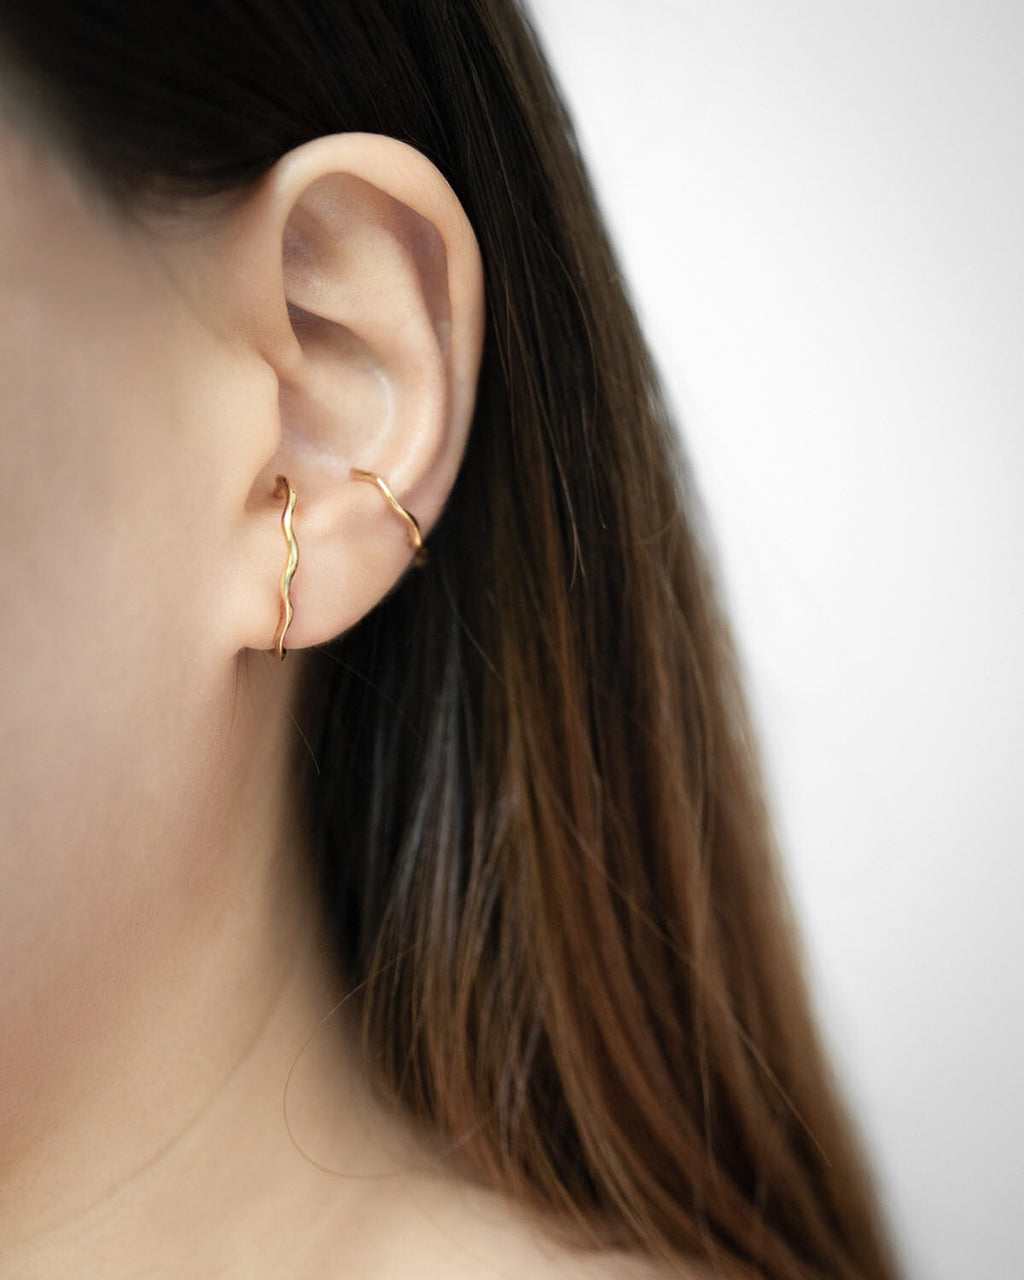 Gold plated wavy design earrings that hug your earlobes - Yvette suspender earrings by The Hexad